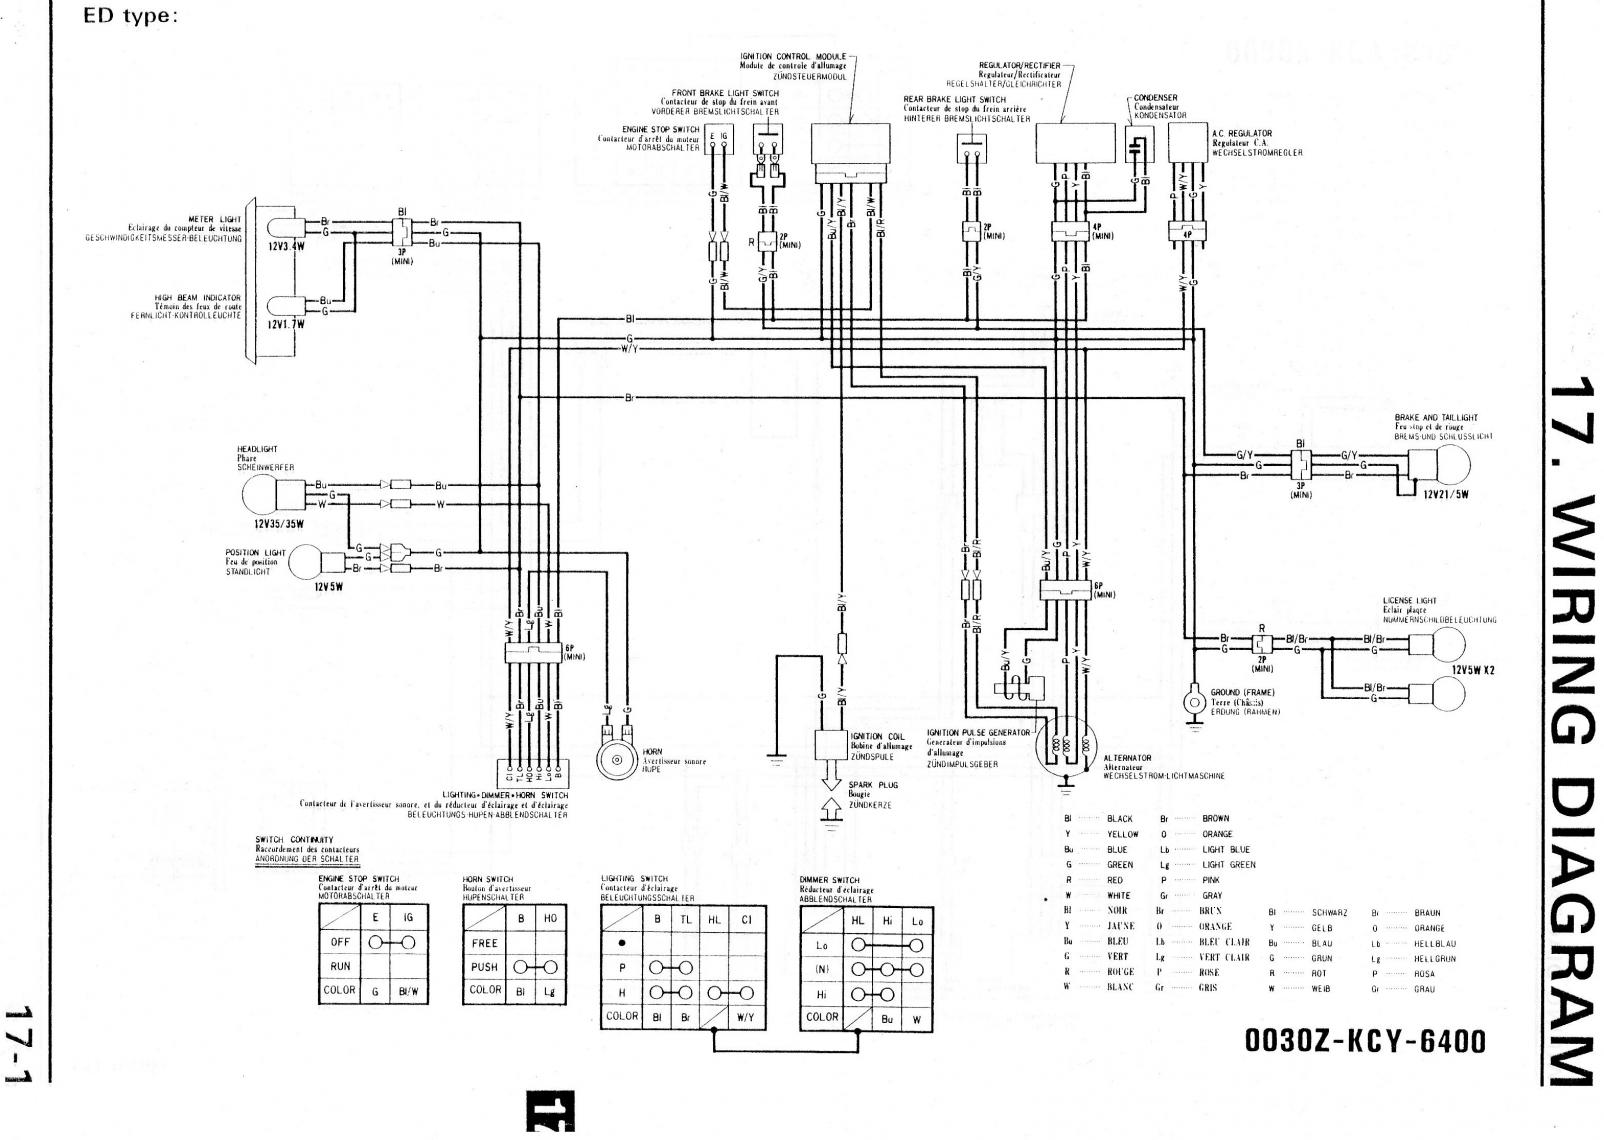 hight resolution of saturn l100 wiring diagram schema wiring diagrams volvo c70 engine diagram saturn l100 engine diagram